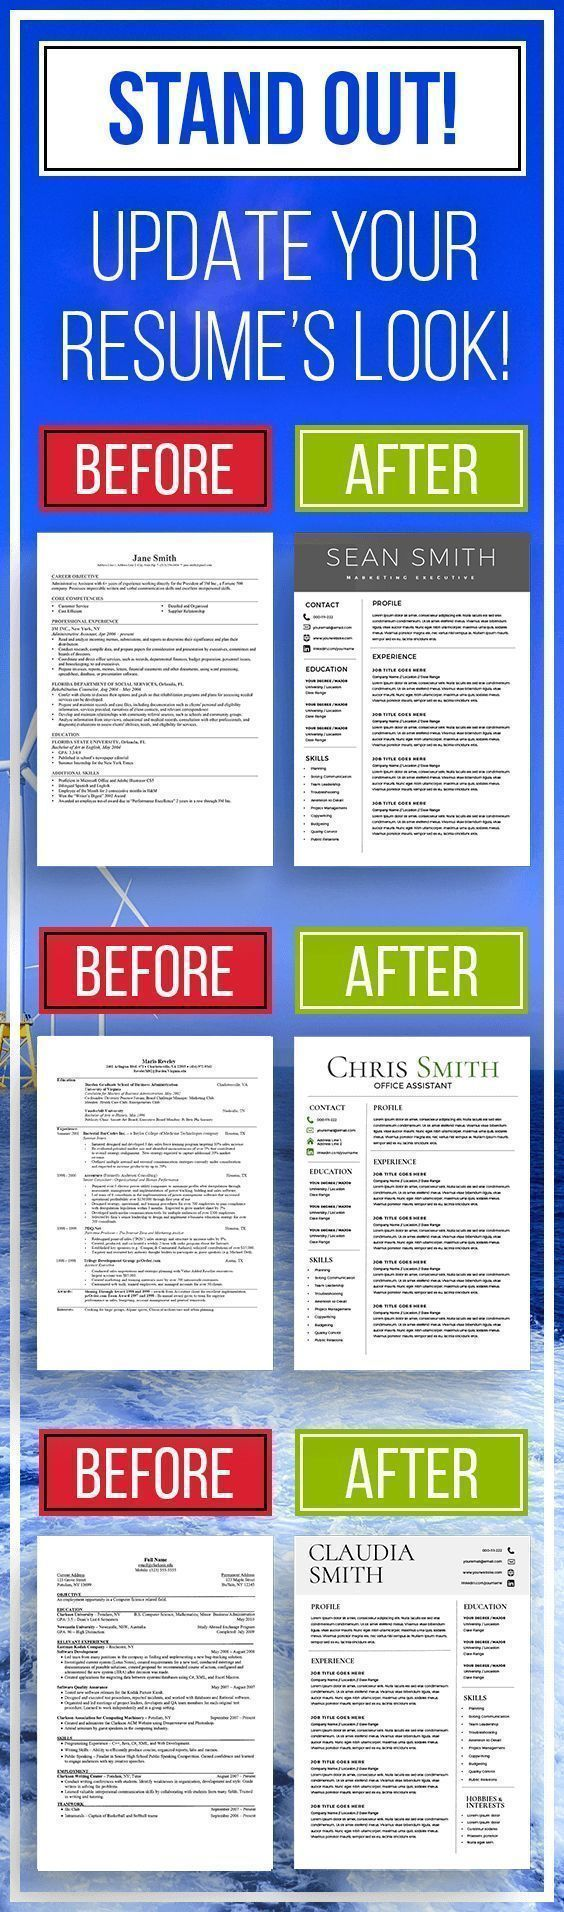 Professional Resume Templates Modern Resume Templates by Kingdom Designs